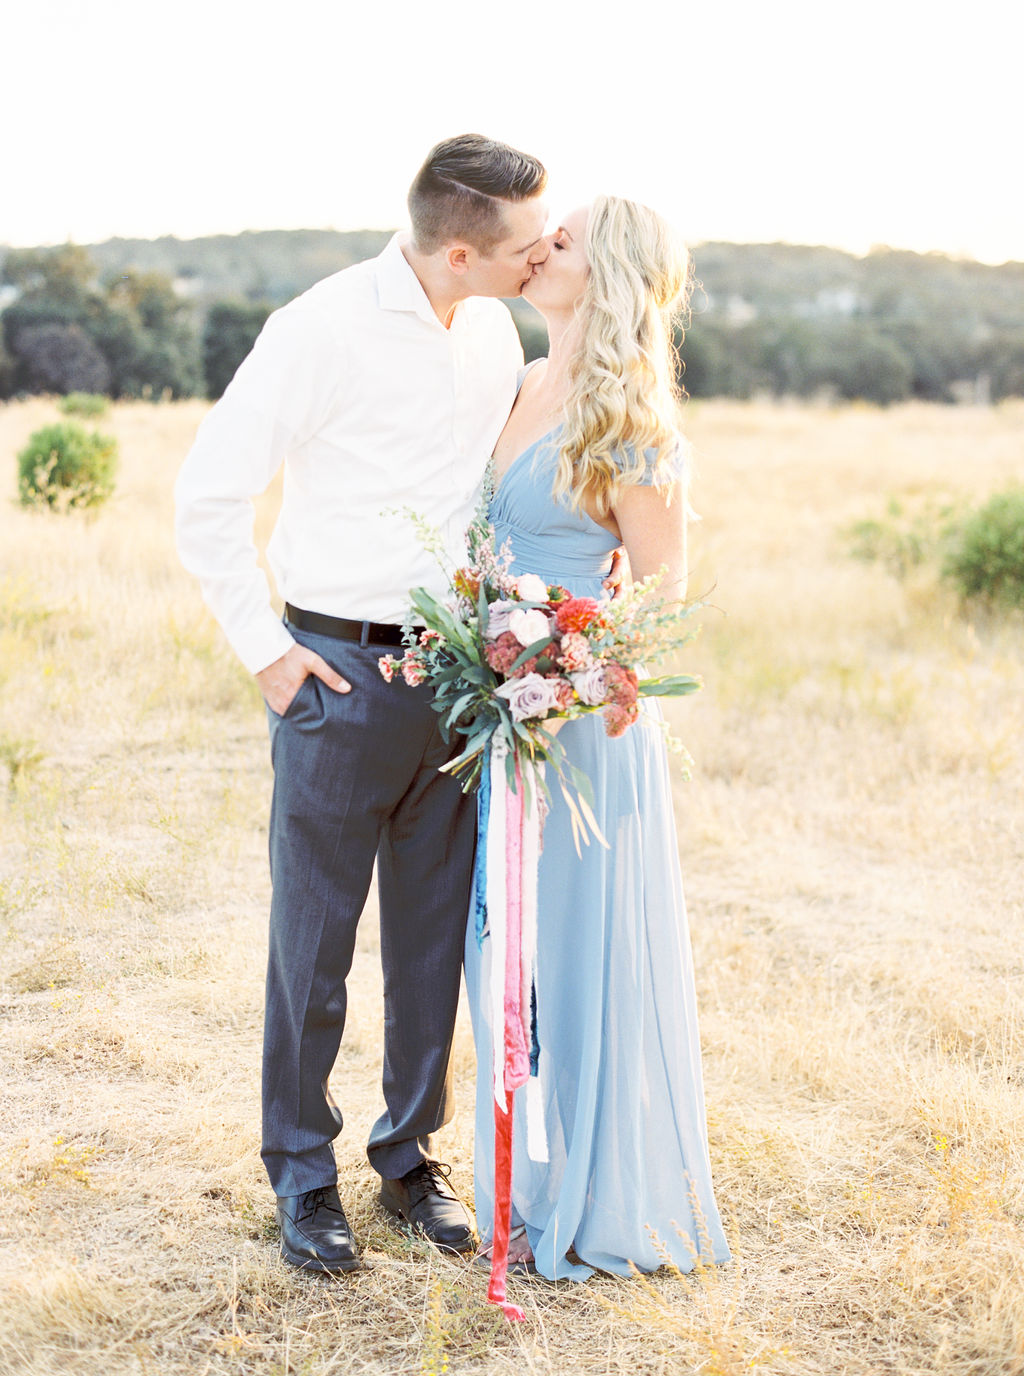 fun and pretty engagement shoot with bouquet and colorful silk velvet ribbons